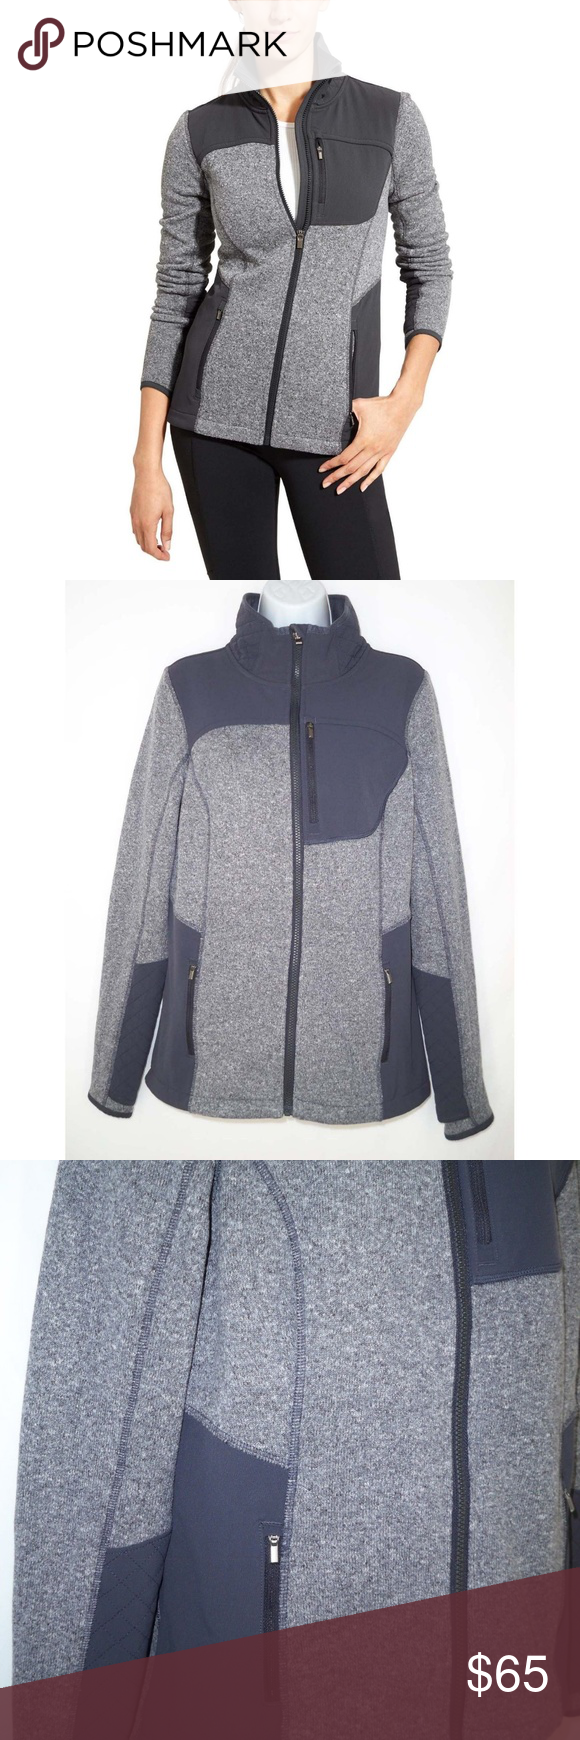 Athleta truckee jacket m medium gray fleece made from cozy sweater